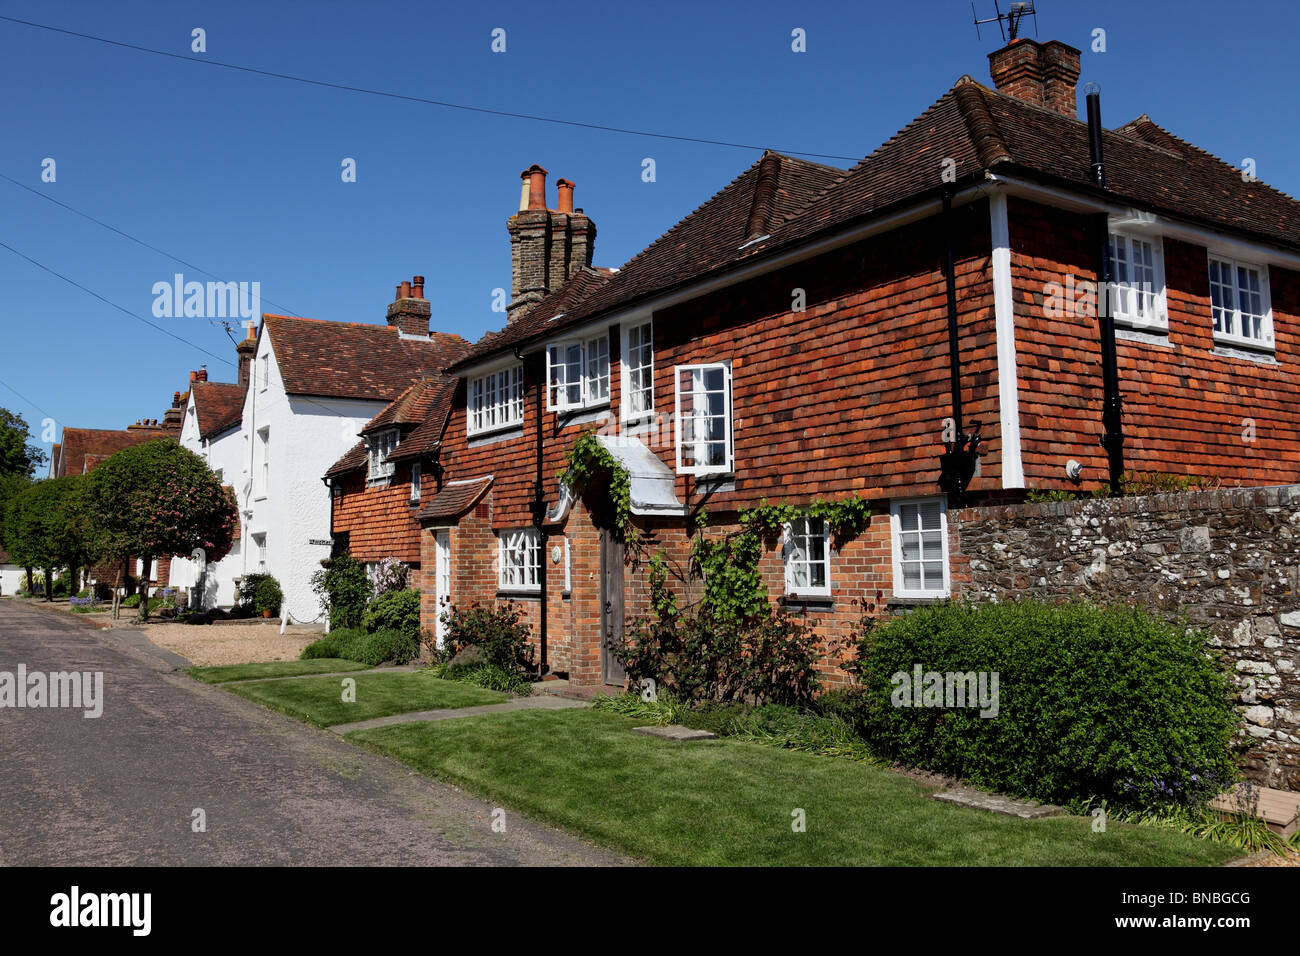 3190. Barrack Square, Winchelsea, East Sussex, UK - Stock Image